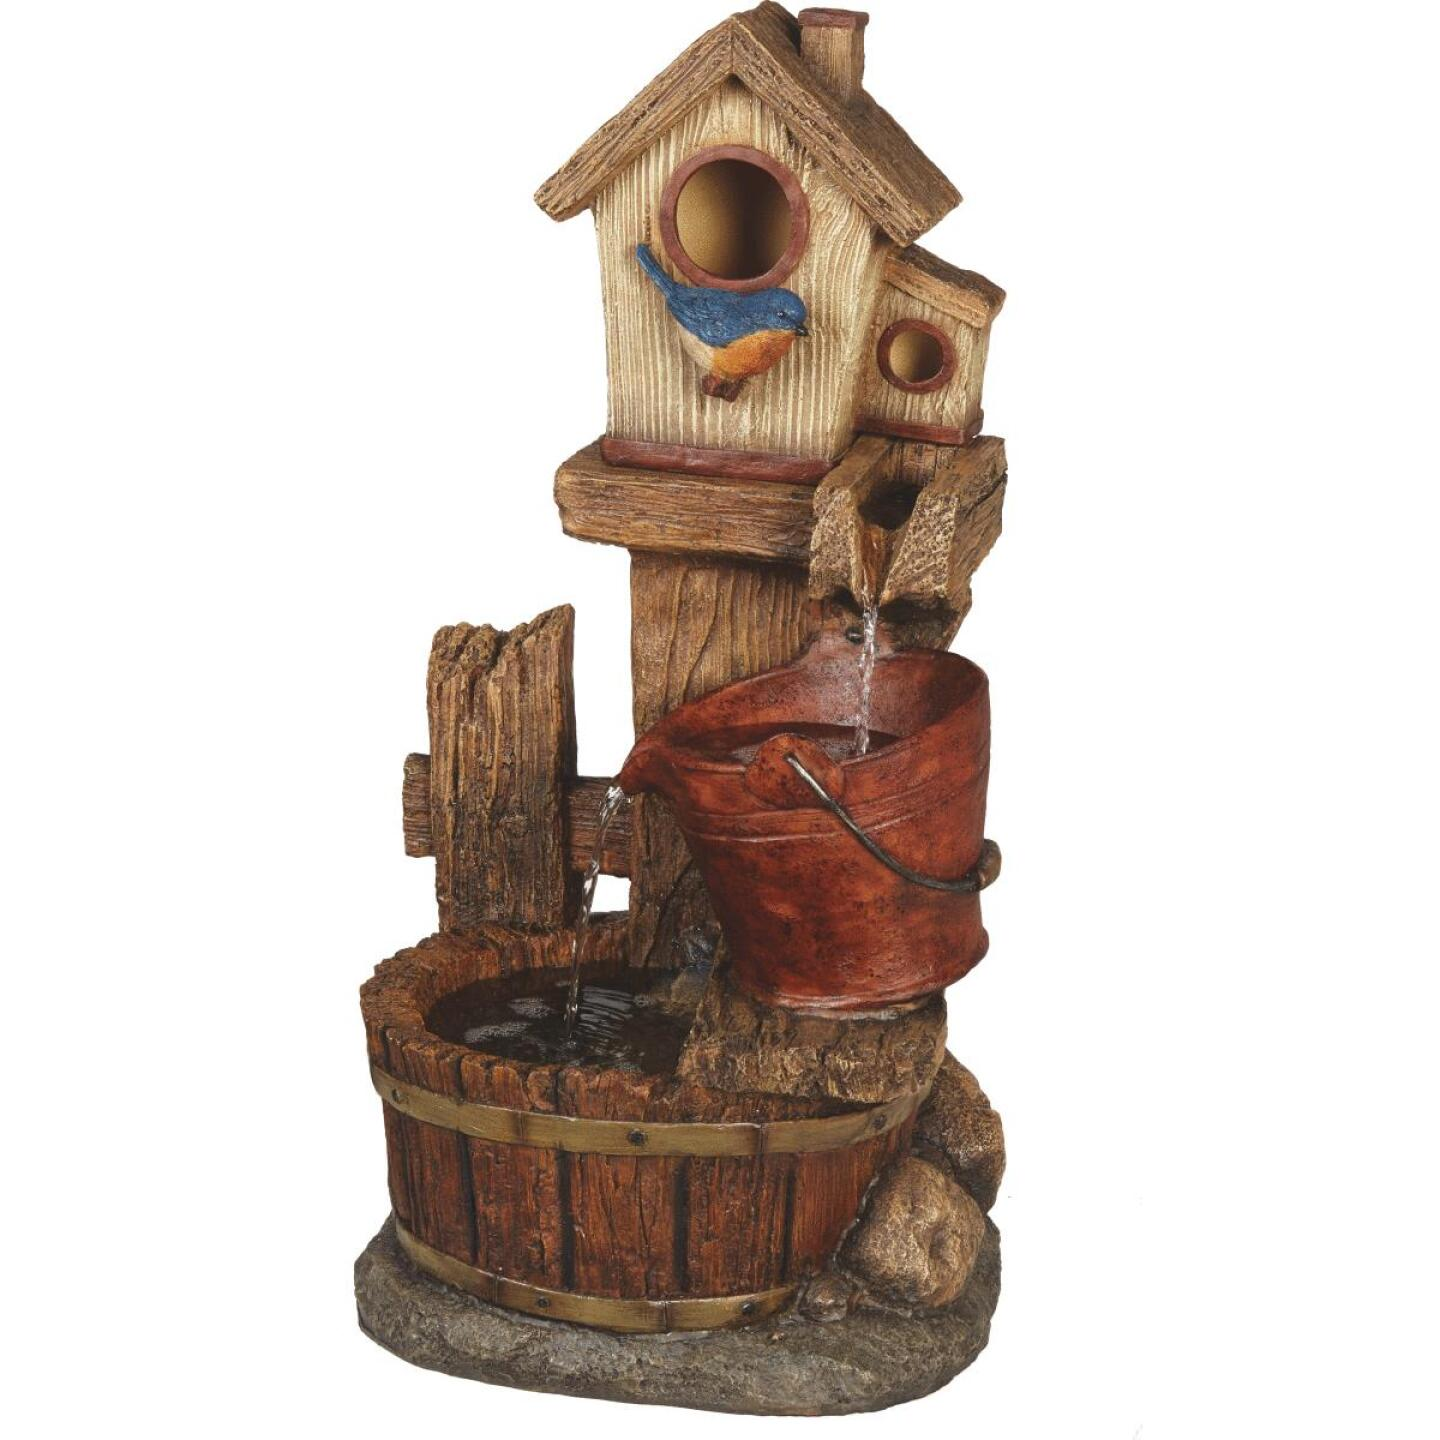 Best Garden 13.5 In. W. x 26.5 In. H. x 10.5 In. L. Polyresin Birdhouse Fountain Image 2